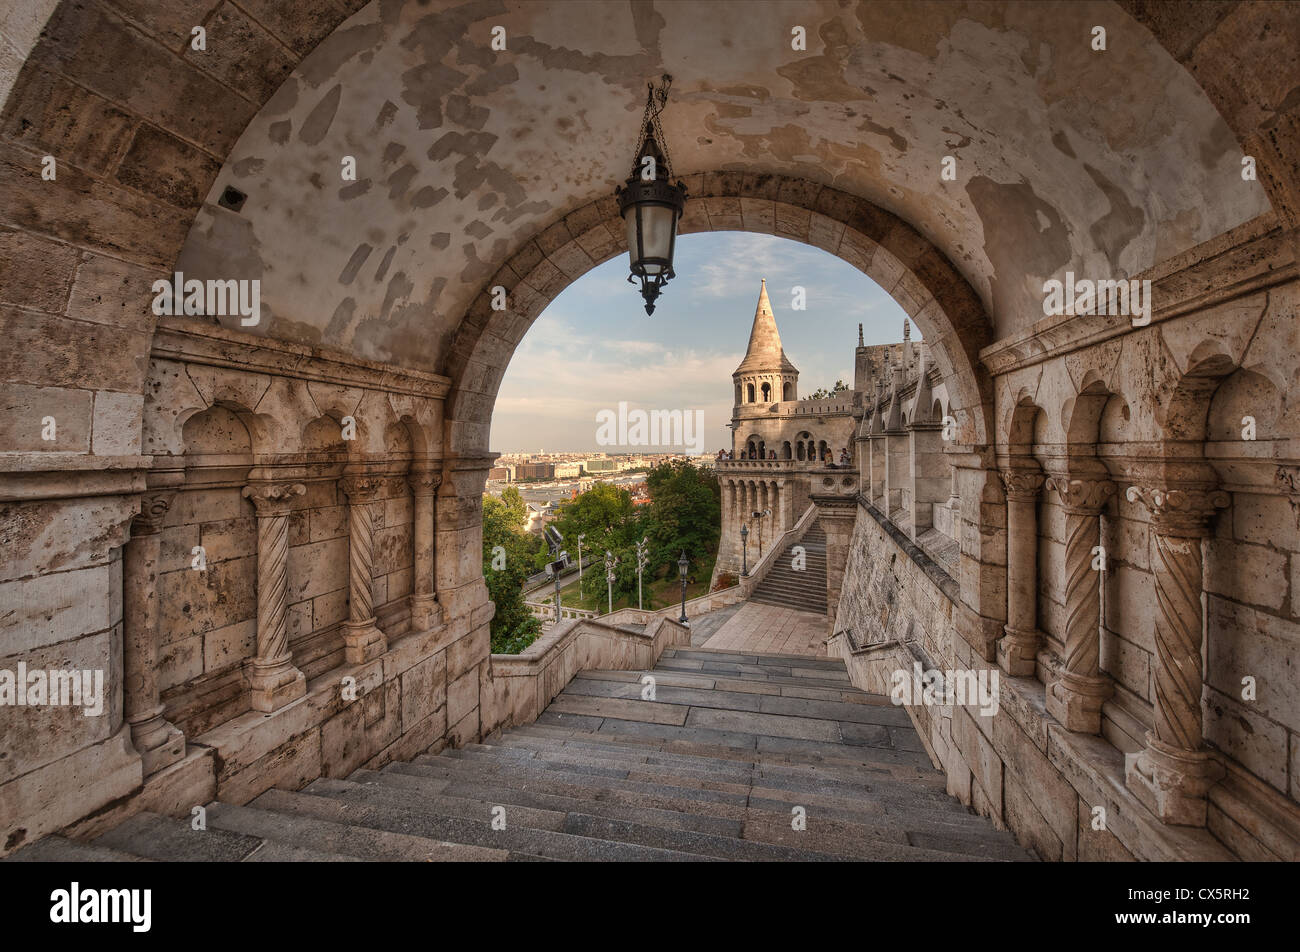 The Fisherman's Bastion (Halászbástya) is a neo-Romanasque style terrace that overlooks the city of - Stock Image